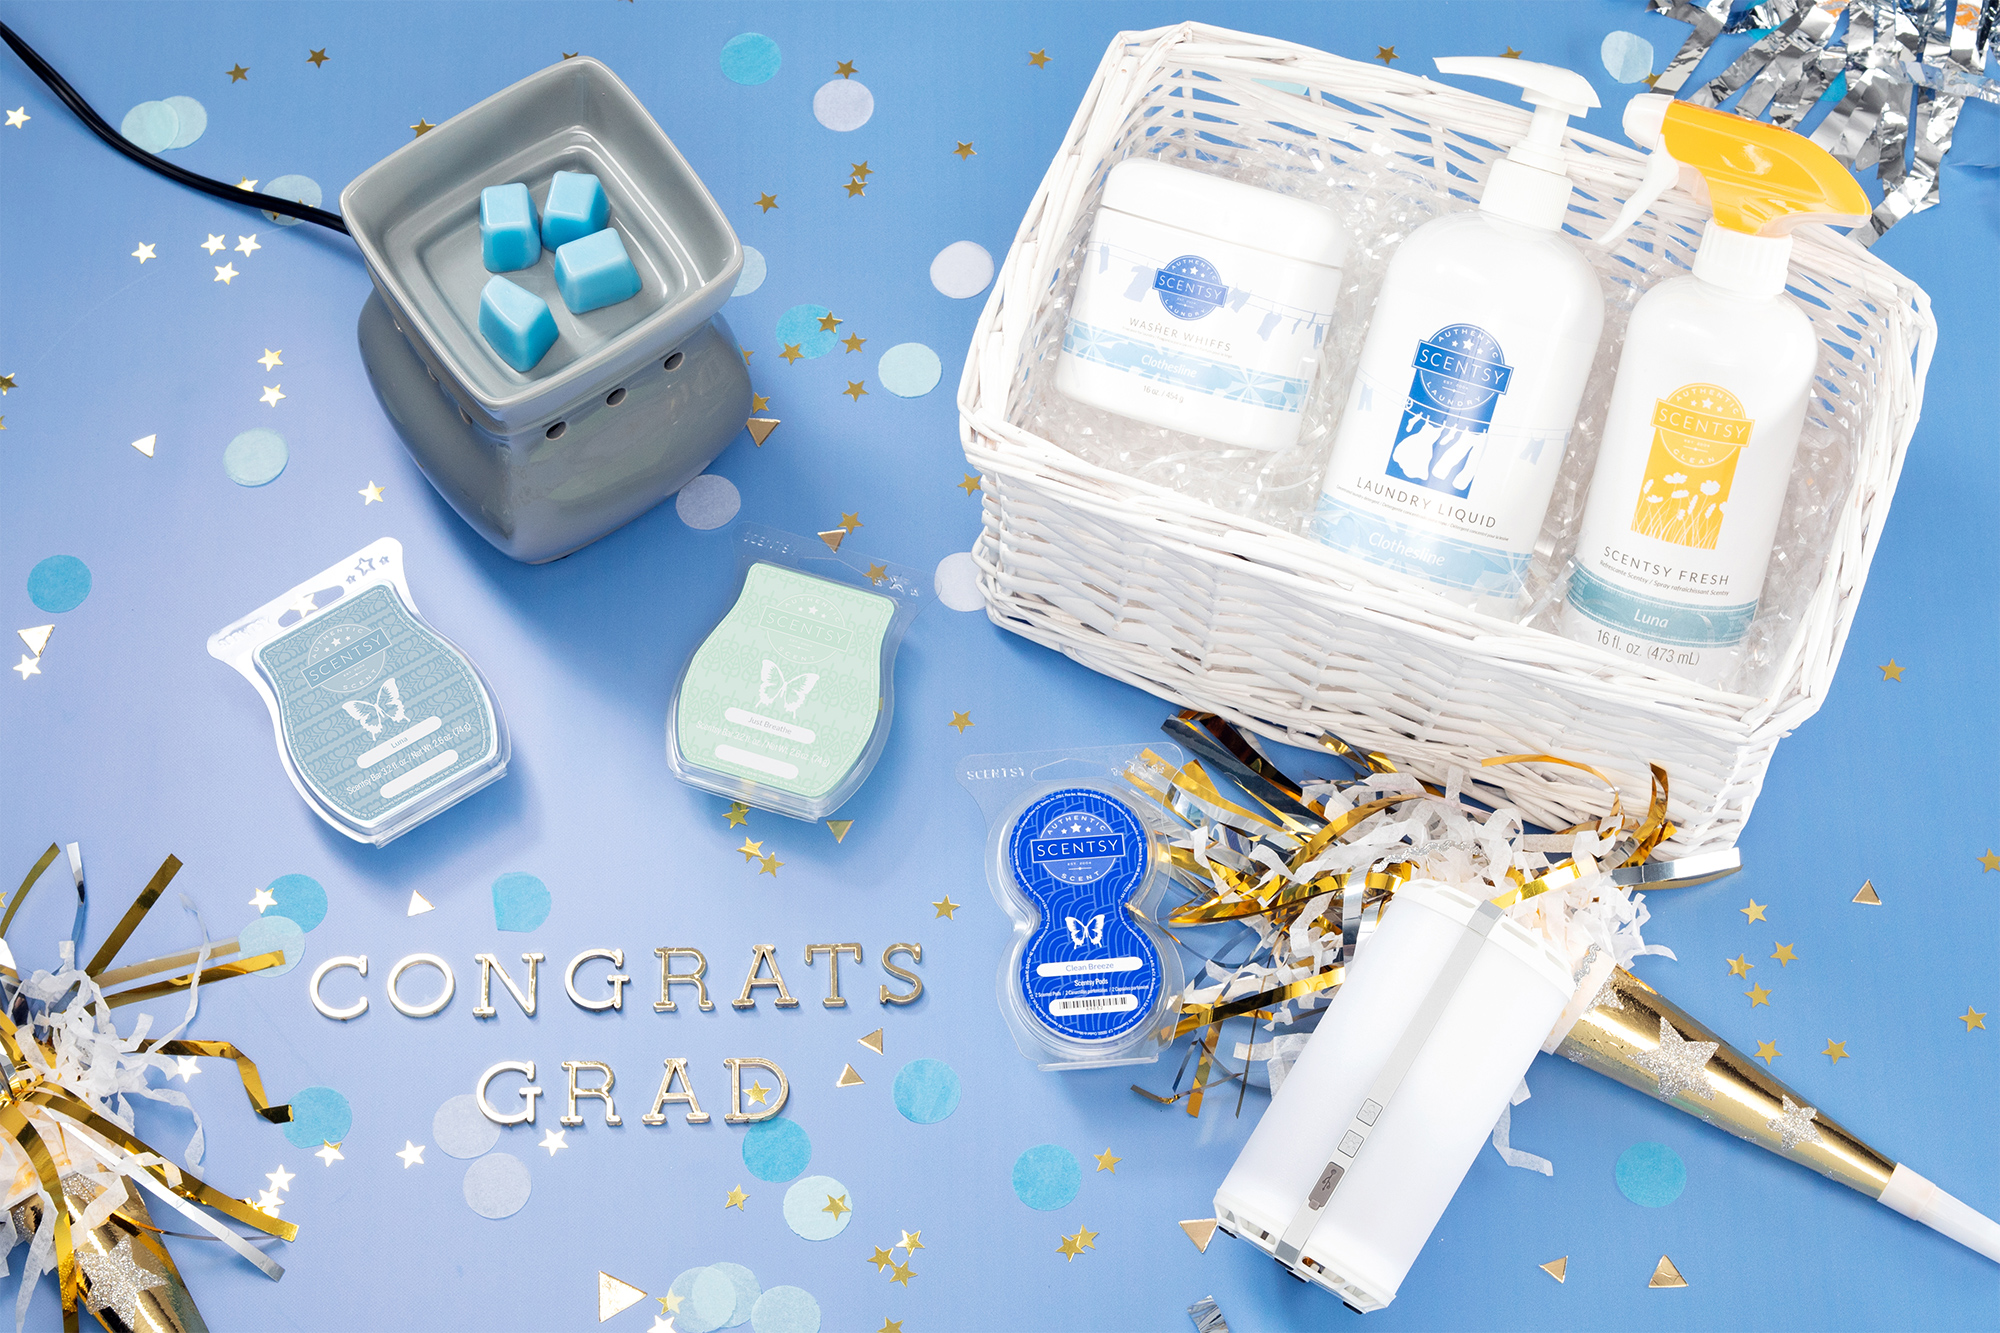 scentsy gifts for graduating students